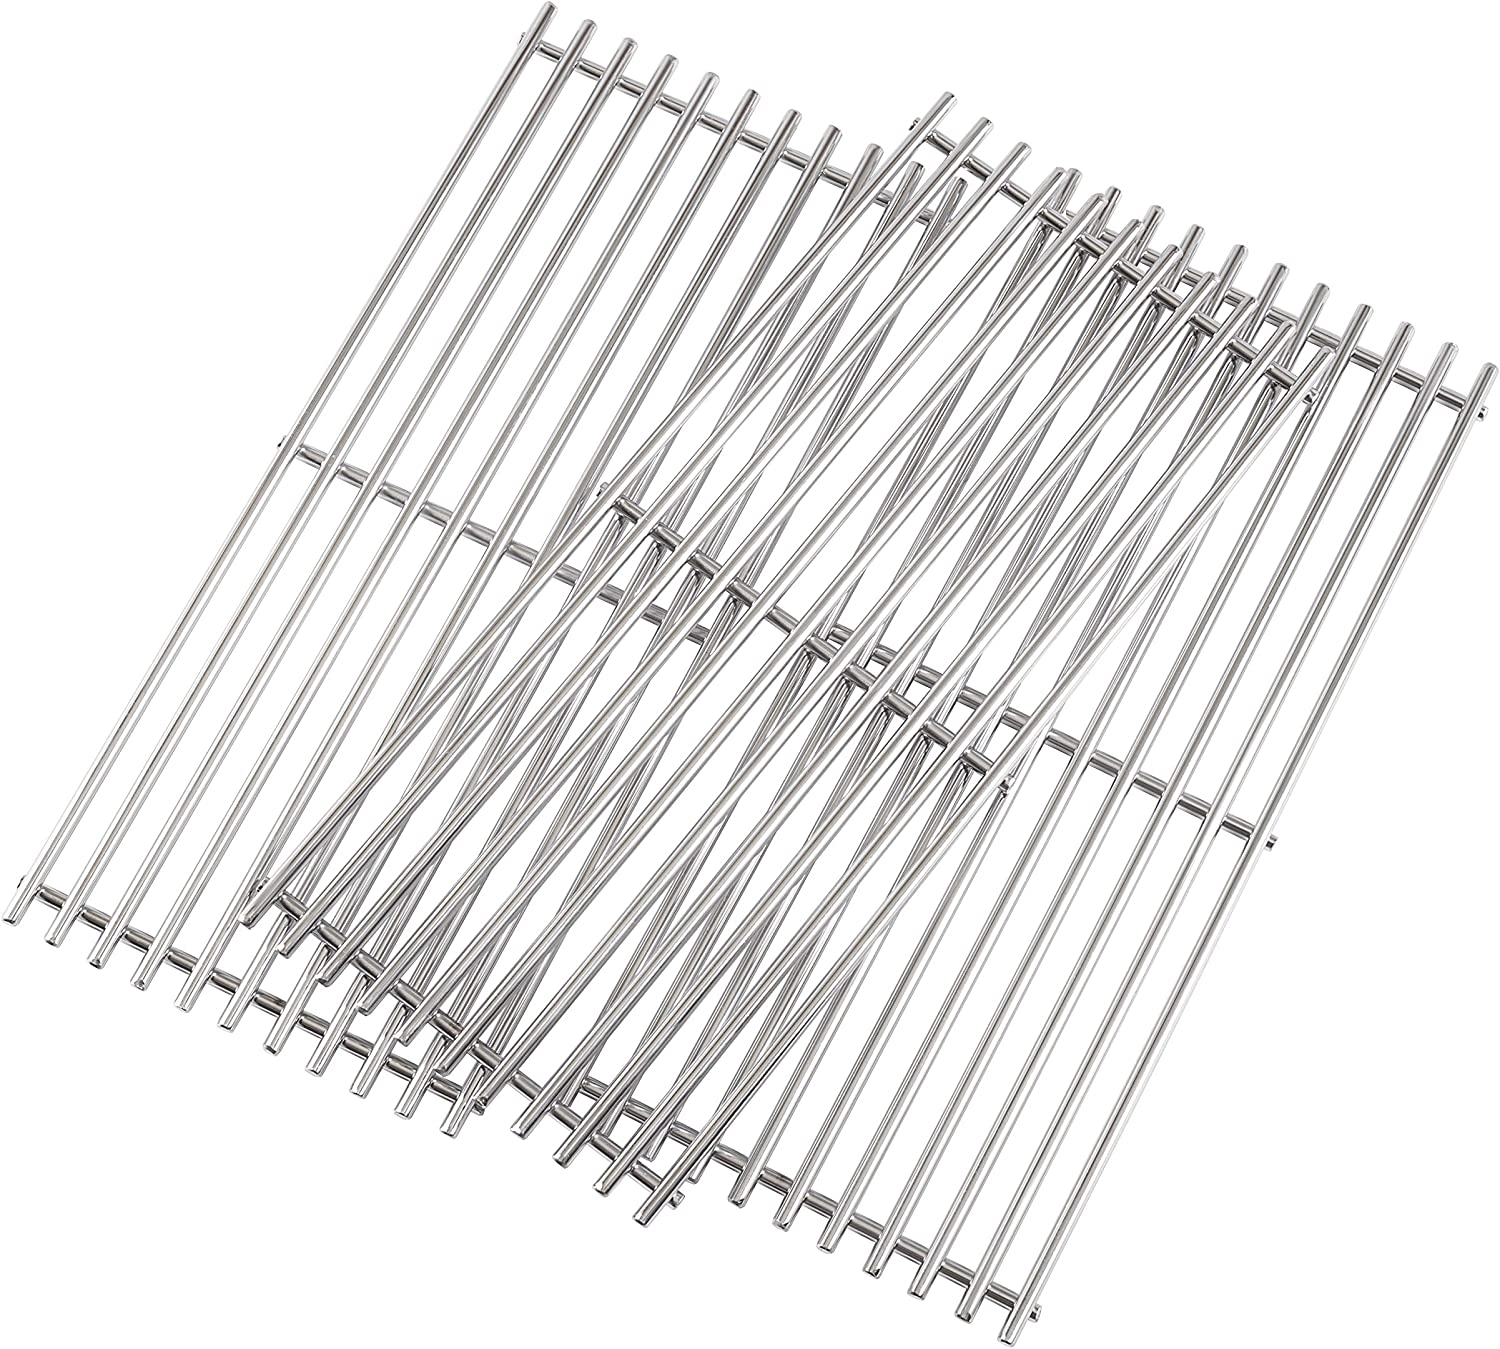 """Grill Valueparts Stainless Steel Grates for KitchenAid 720-0787D 720-0953 720-0733, Brinkmann 810-8530-S 810-8533-S 810-8534-S 810-7400-F Charmglow 810-7440-S, (3-Pack) 18 13/16 x 24 3/8"""" Overall"""